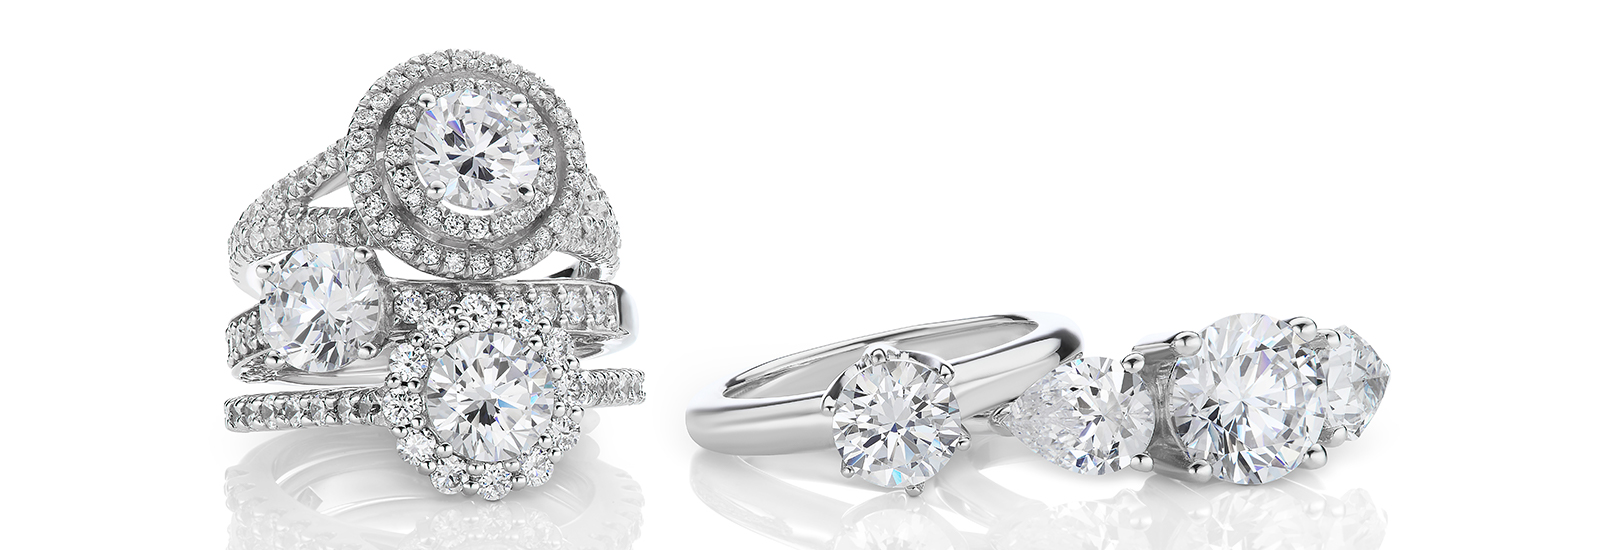 classic diamond engagement ring styles